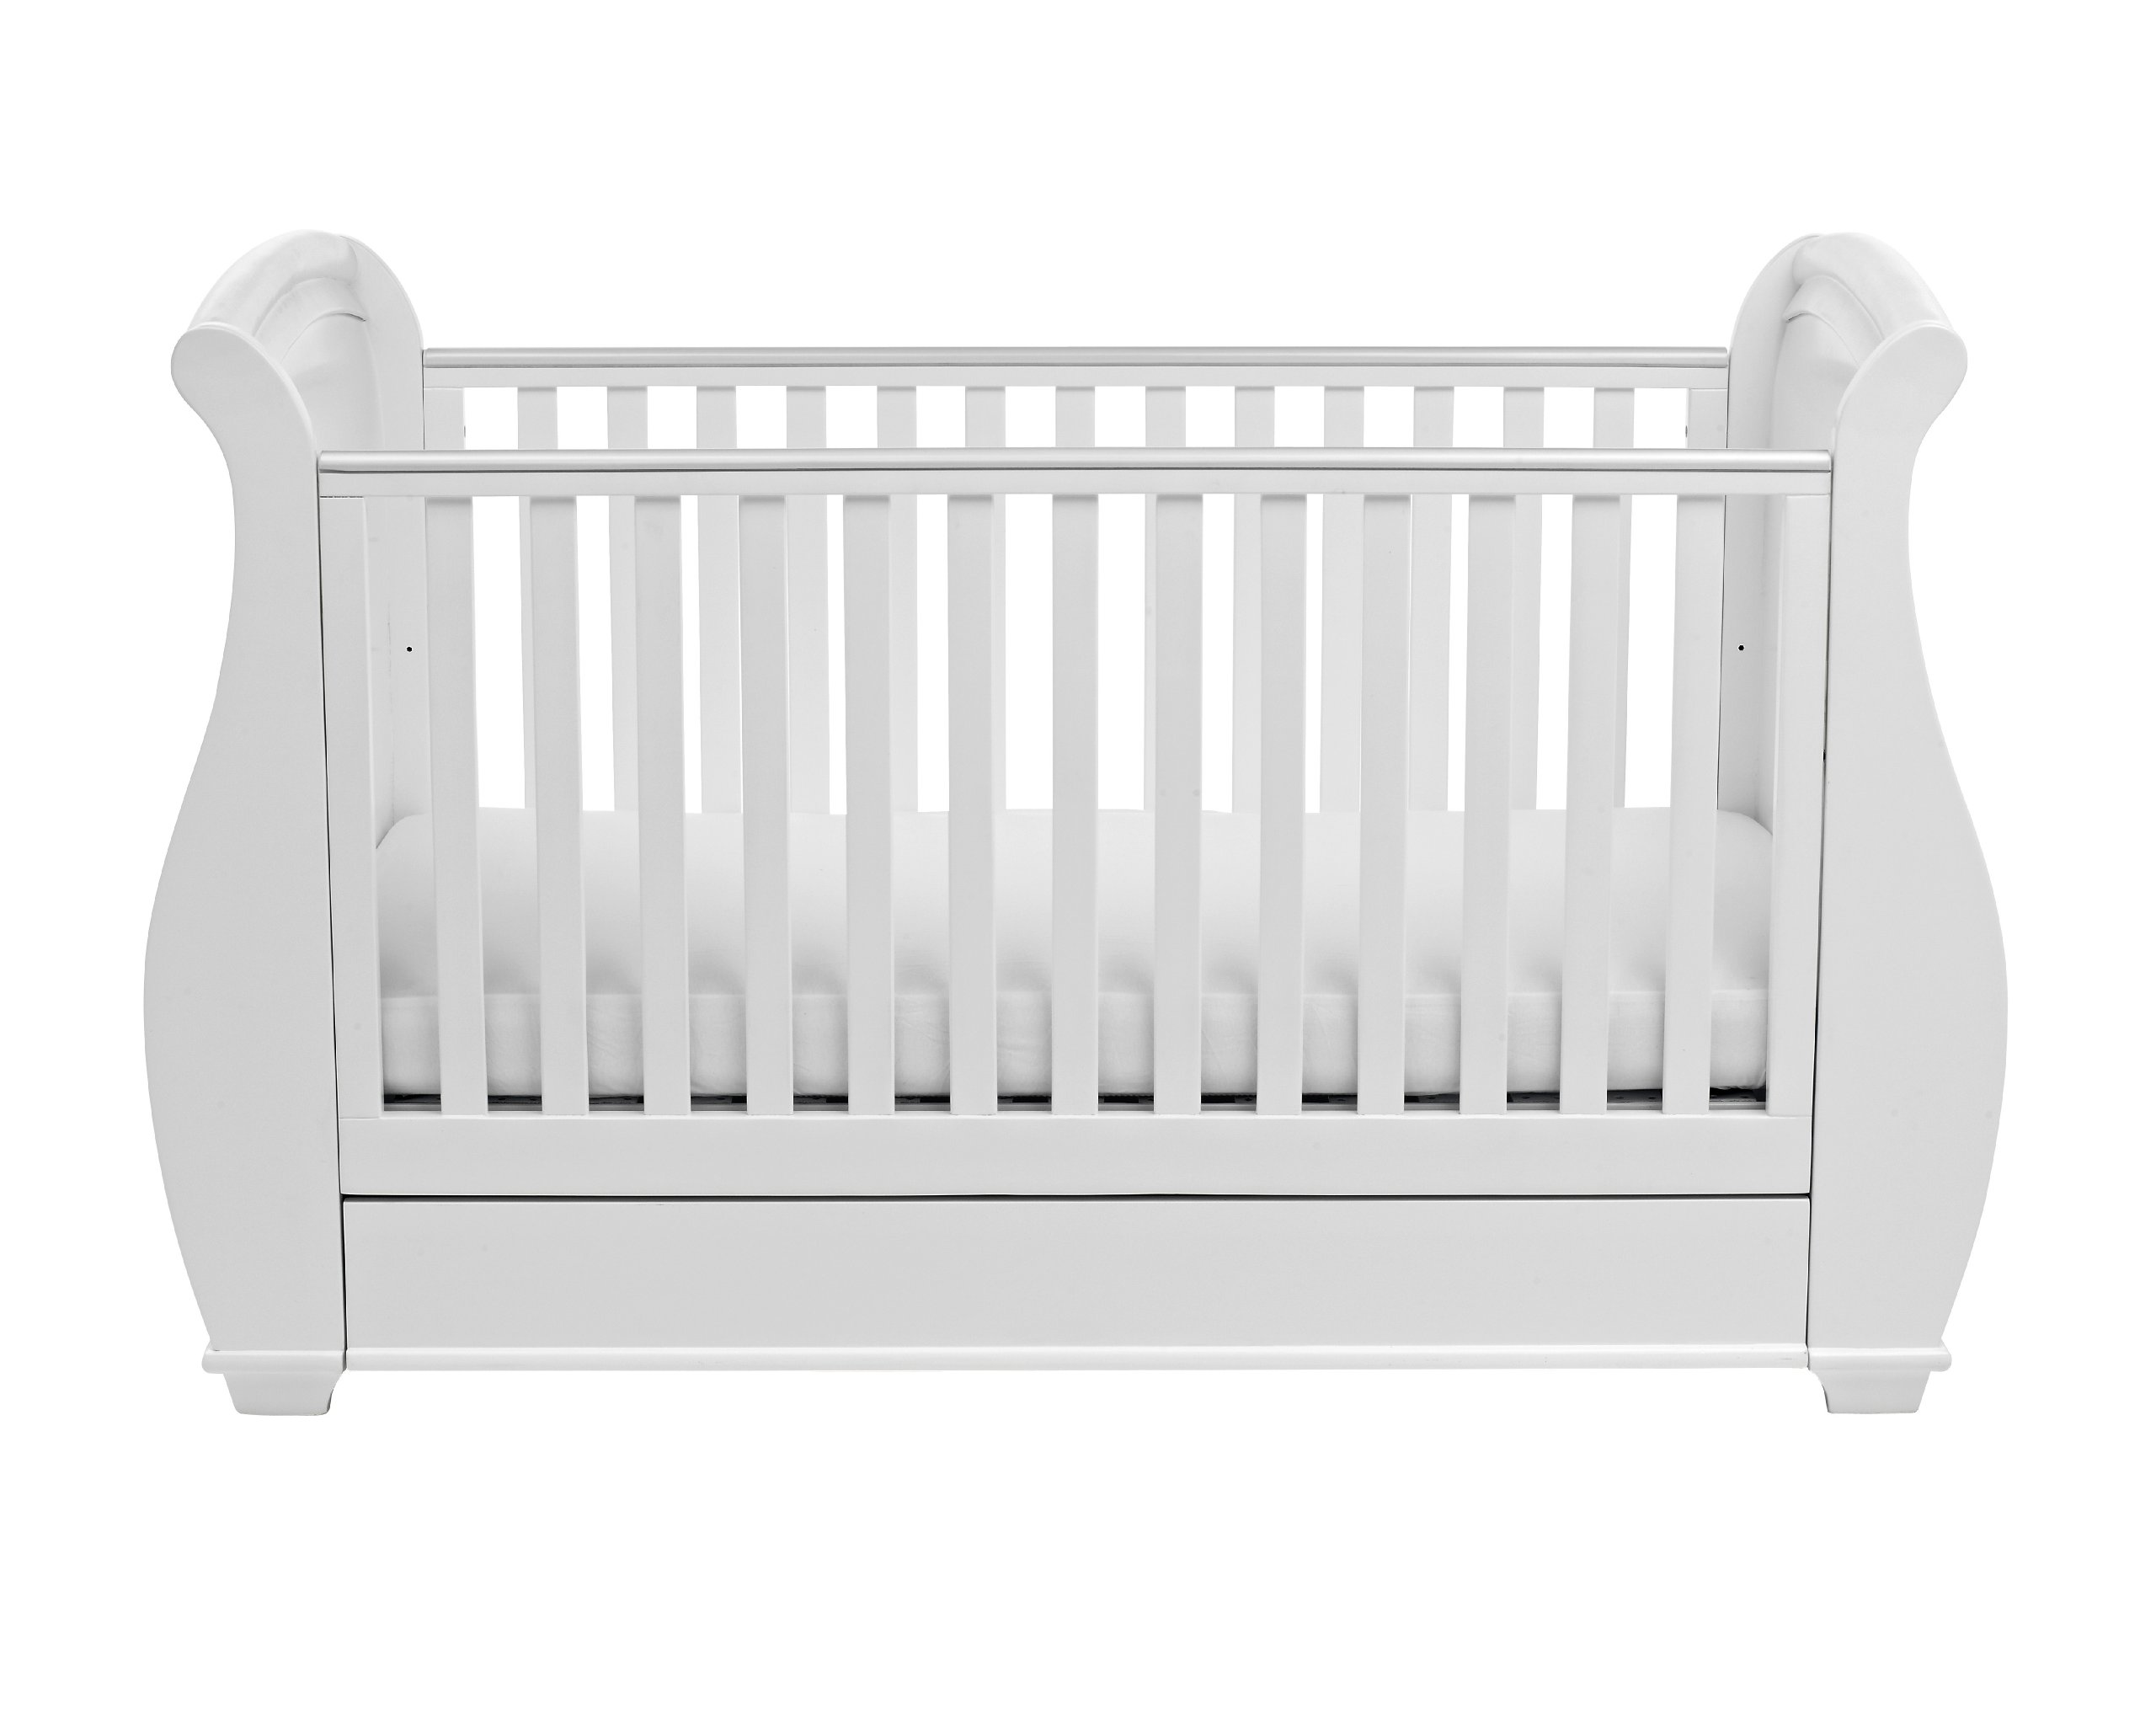 Babymore Bel Sleigh Cot Bed Dropside with Drawer (White)  Magnificent sleigh with appealing look of grandeur and solidity. Easily convert to junior bed/sofa/day bed, Meet British and European safety standards Single handed drop side mechanism allow easy access to your baby. 5